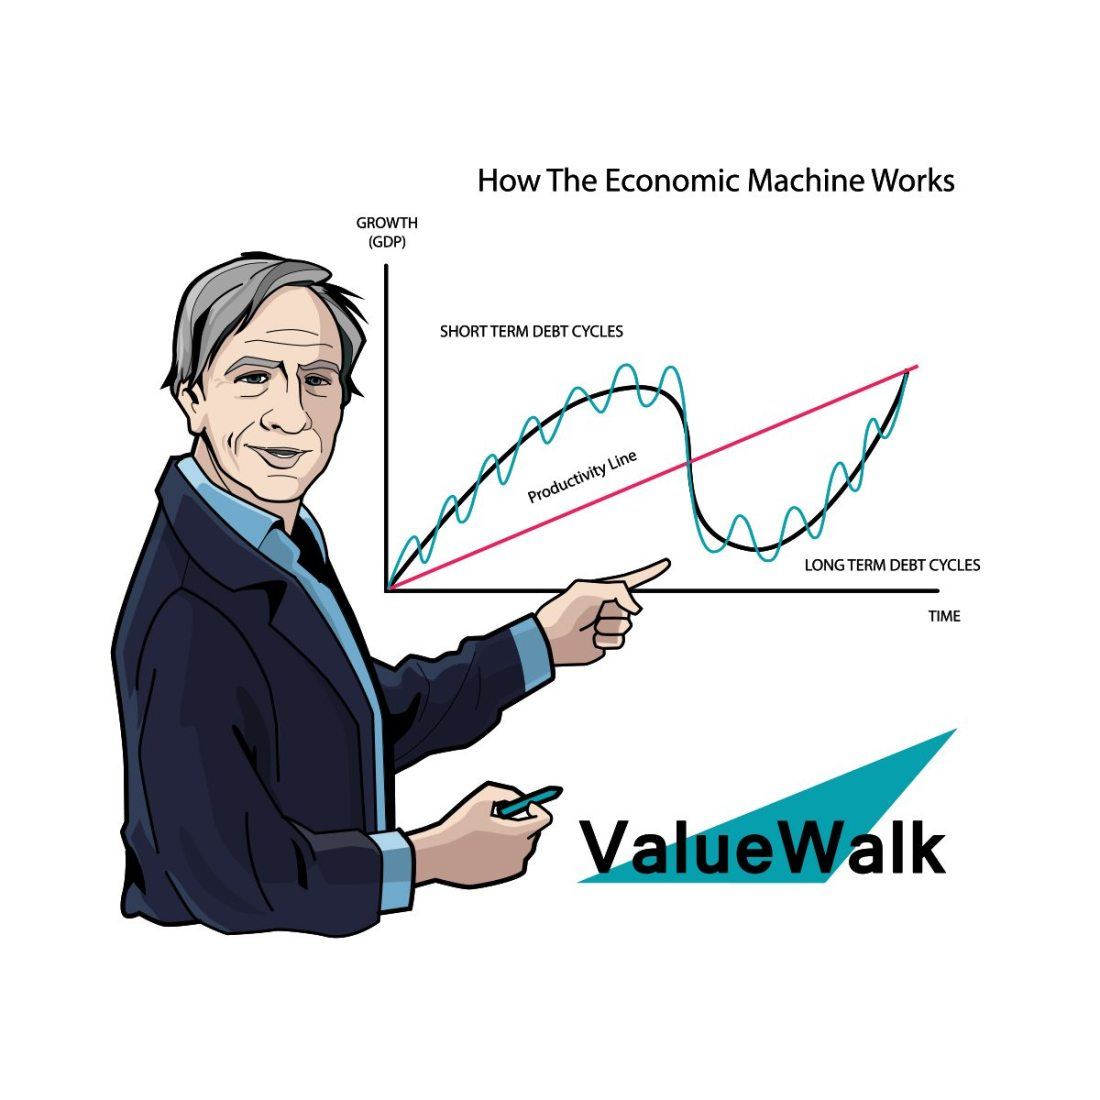 Ray_Dalio_JPG-Bridgewater-associates-VALUEWALK-LLC-how-the-economic-machine-works-macro-investing